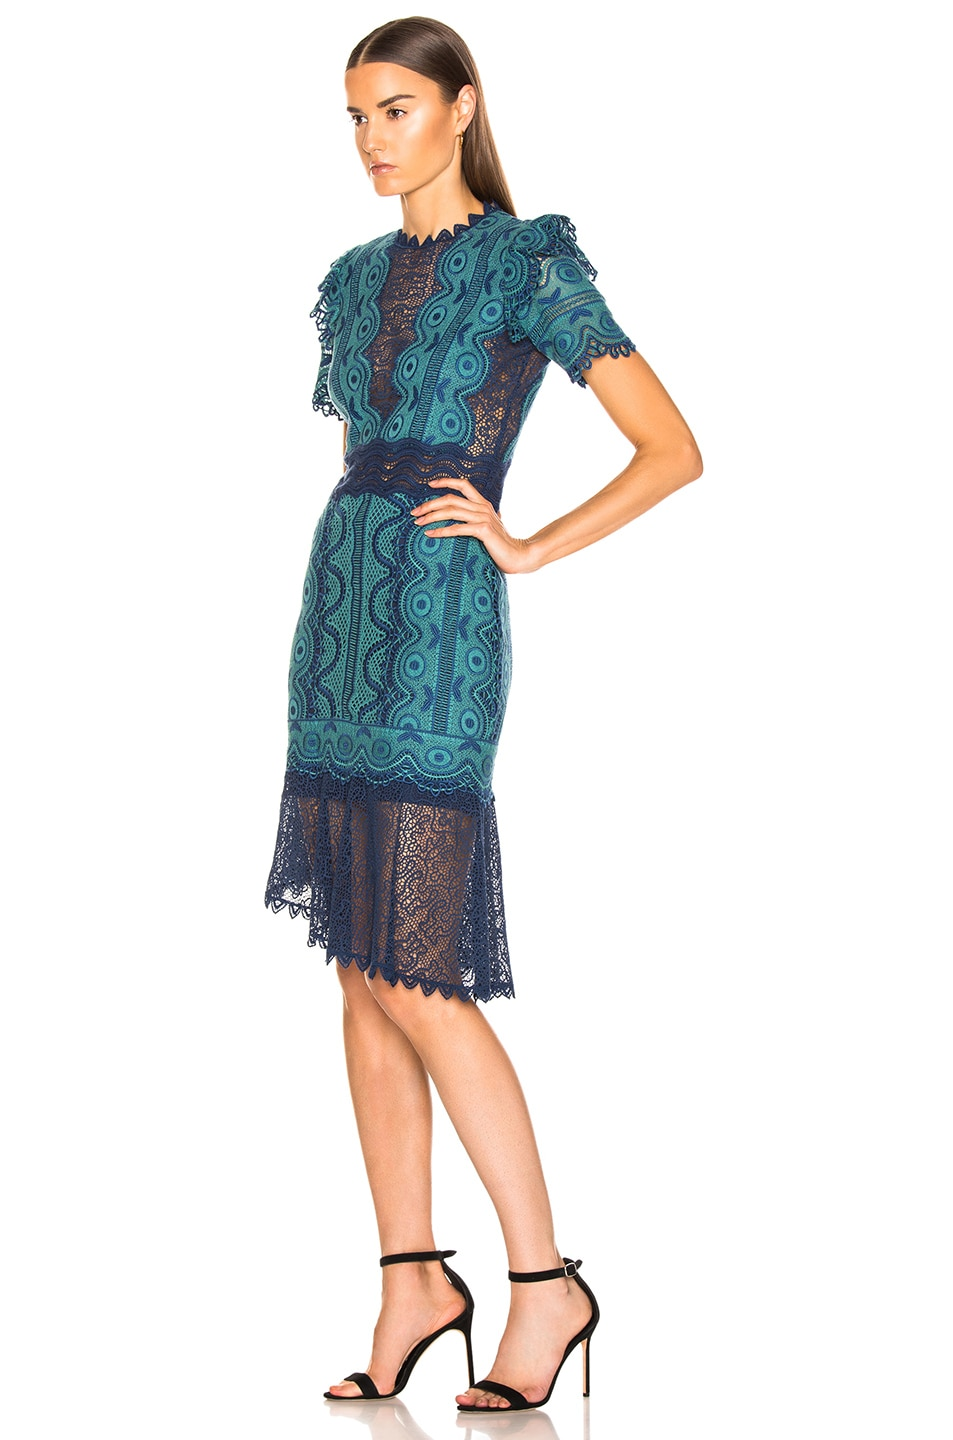 Image 3 of Sea Lola Lace Short Sleeve Dress in Teal Blue Multi